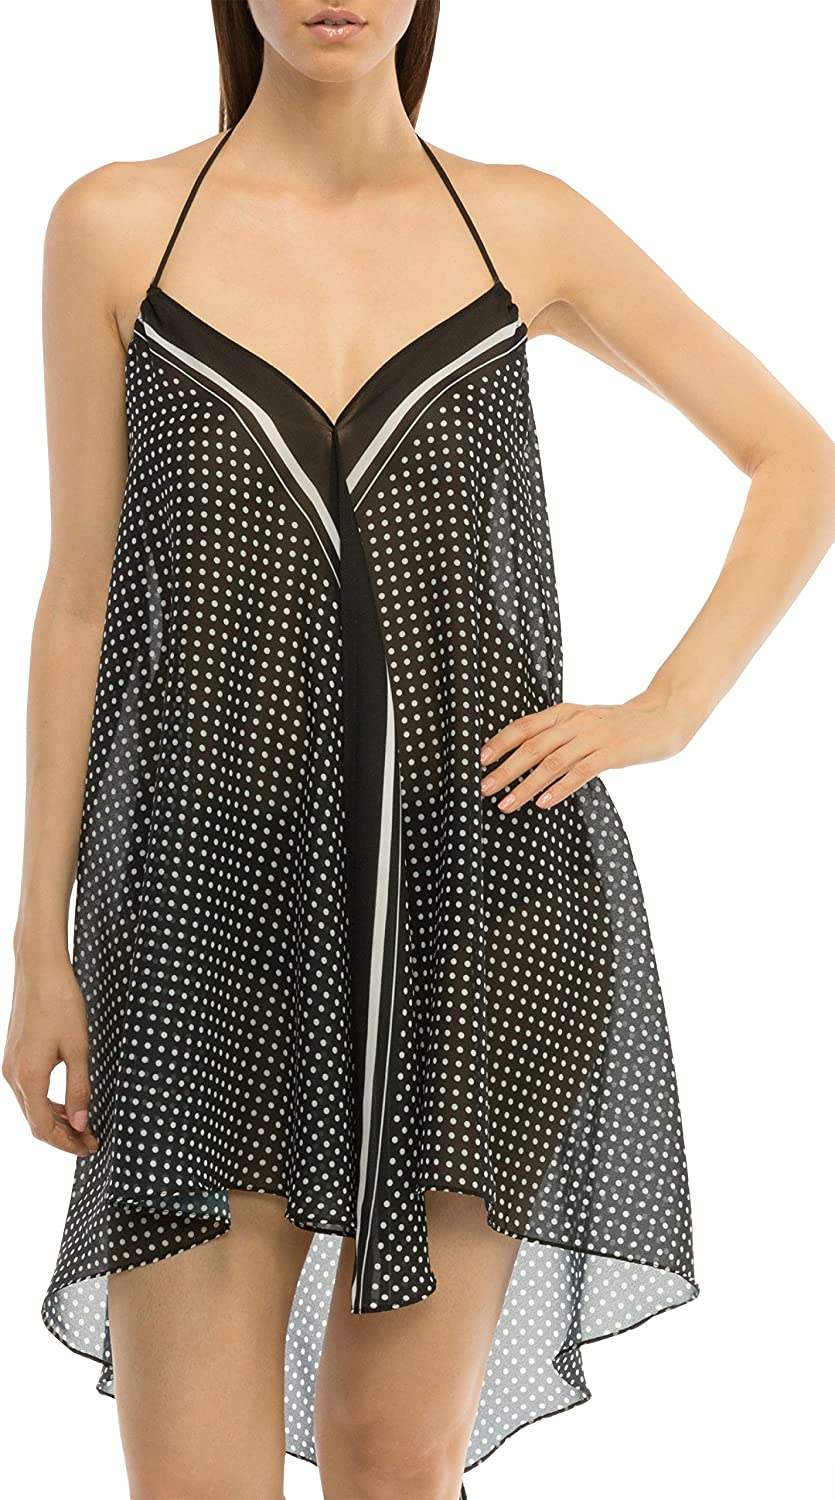 Coco Reef Polka Dot Print Congreenible Bathing Suit Cover Up